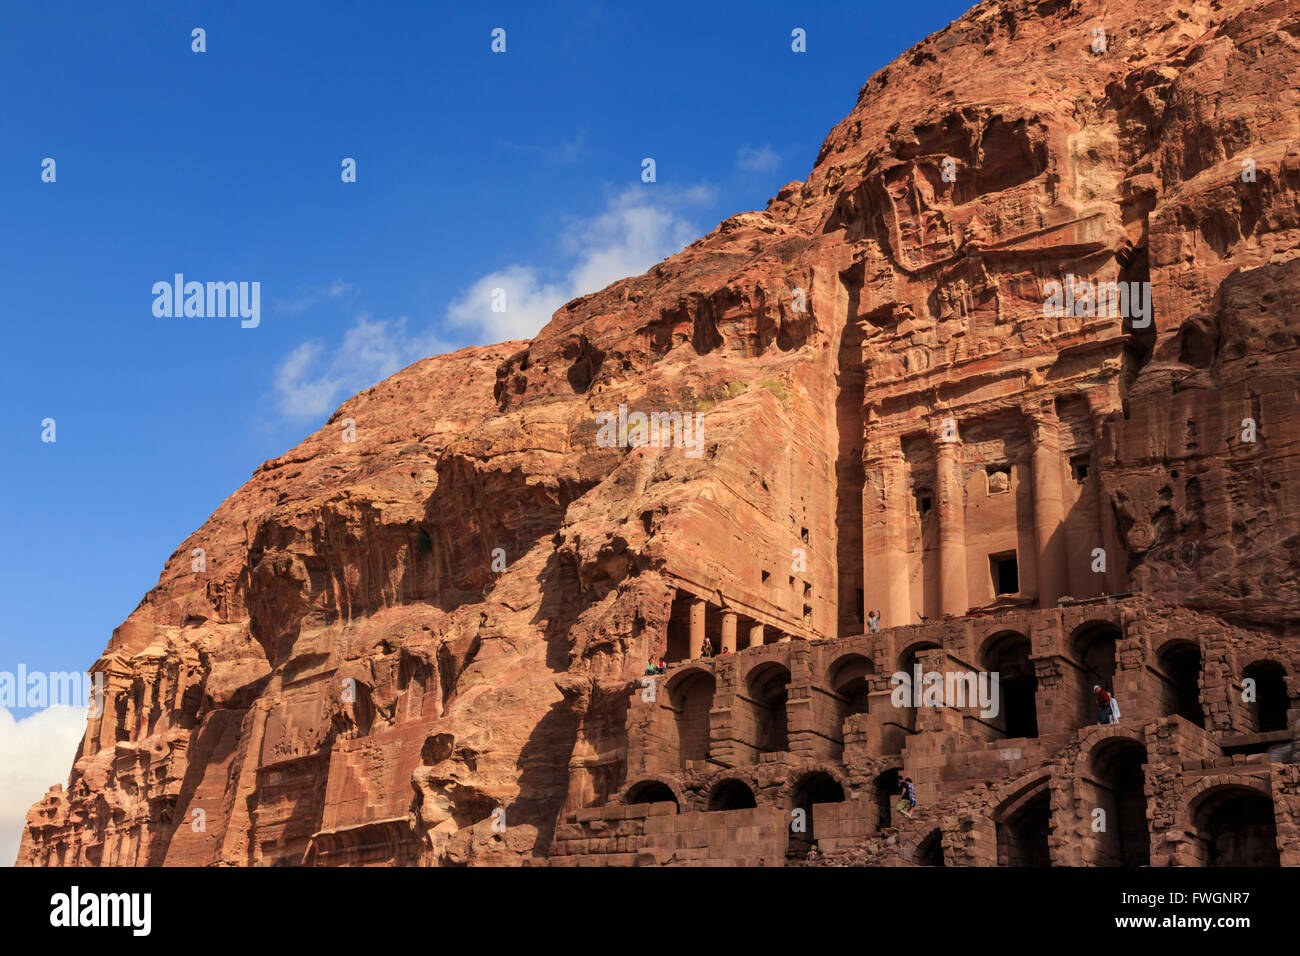 Tourist around the Urn Tomb, Royal Tombs, Petra, UNESCO World Heritage Site, Jordan, Middle East Stock Photo